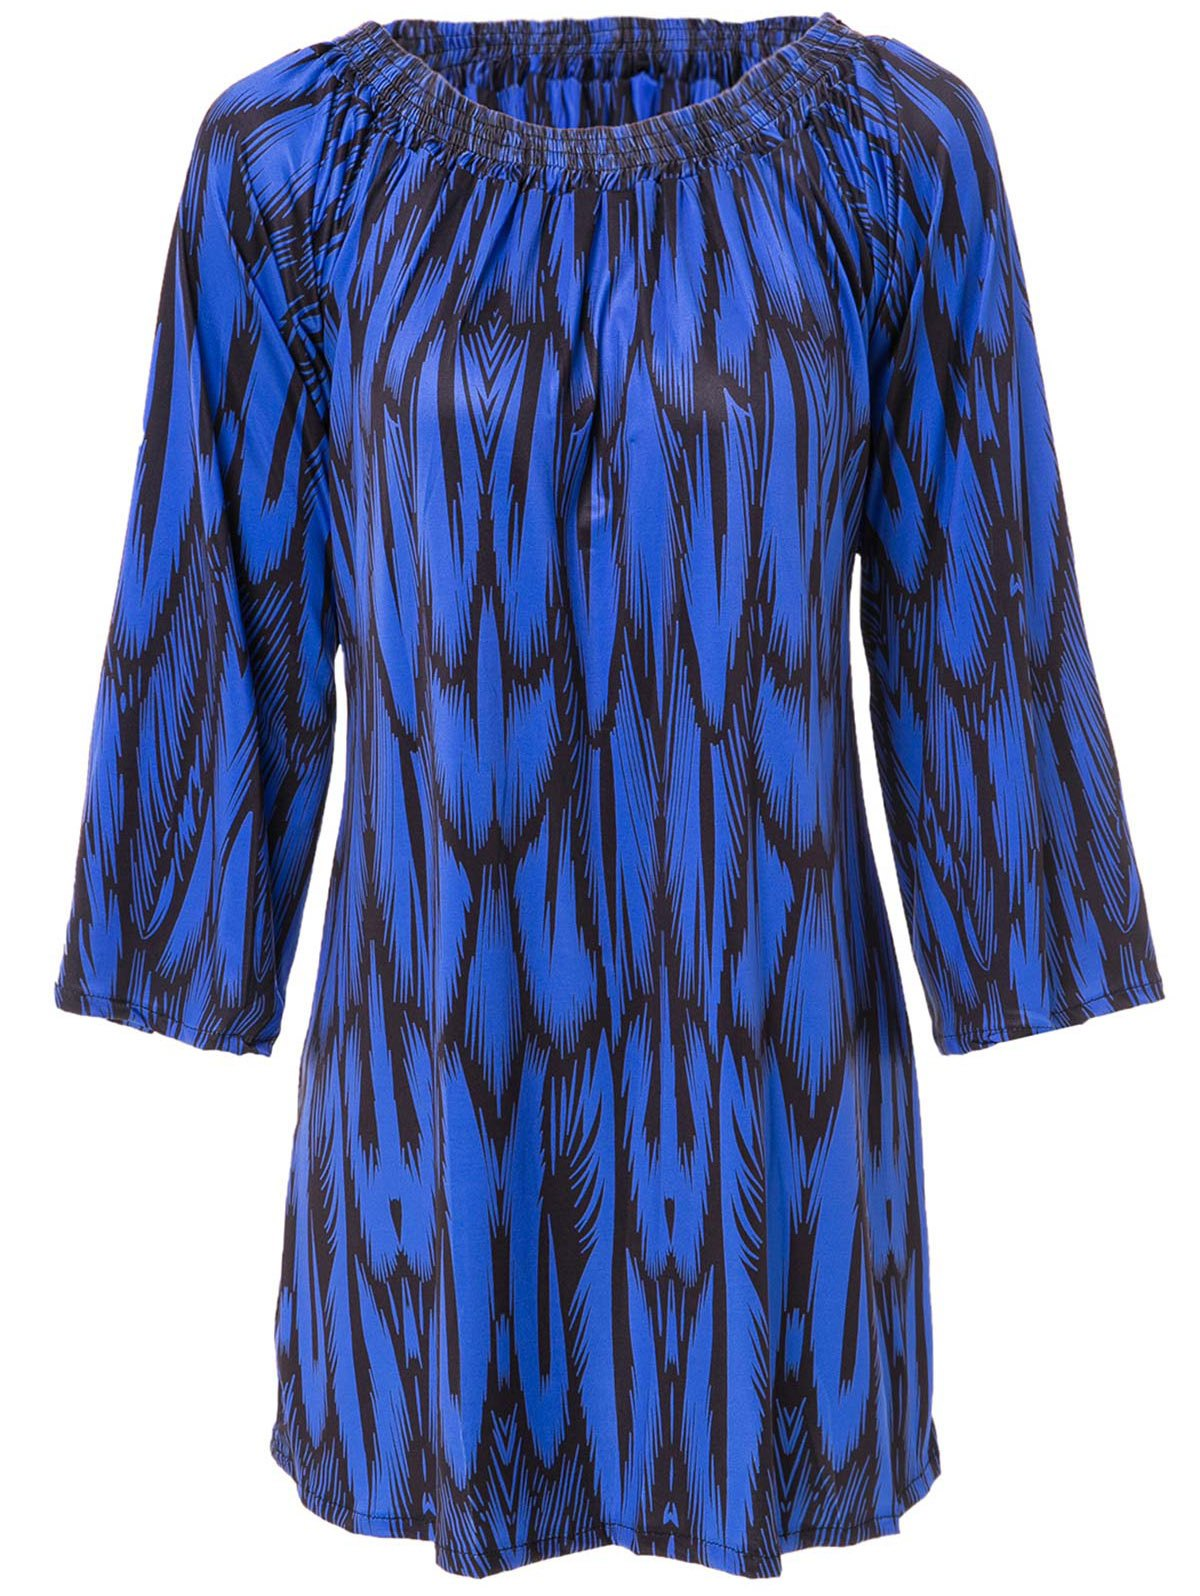 Slash Neck Long Sleeve Print Dress For Women - DEEP BLUE L